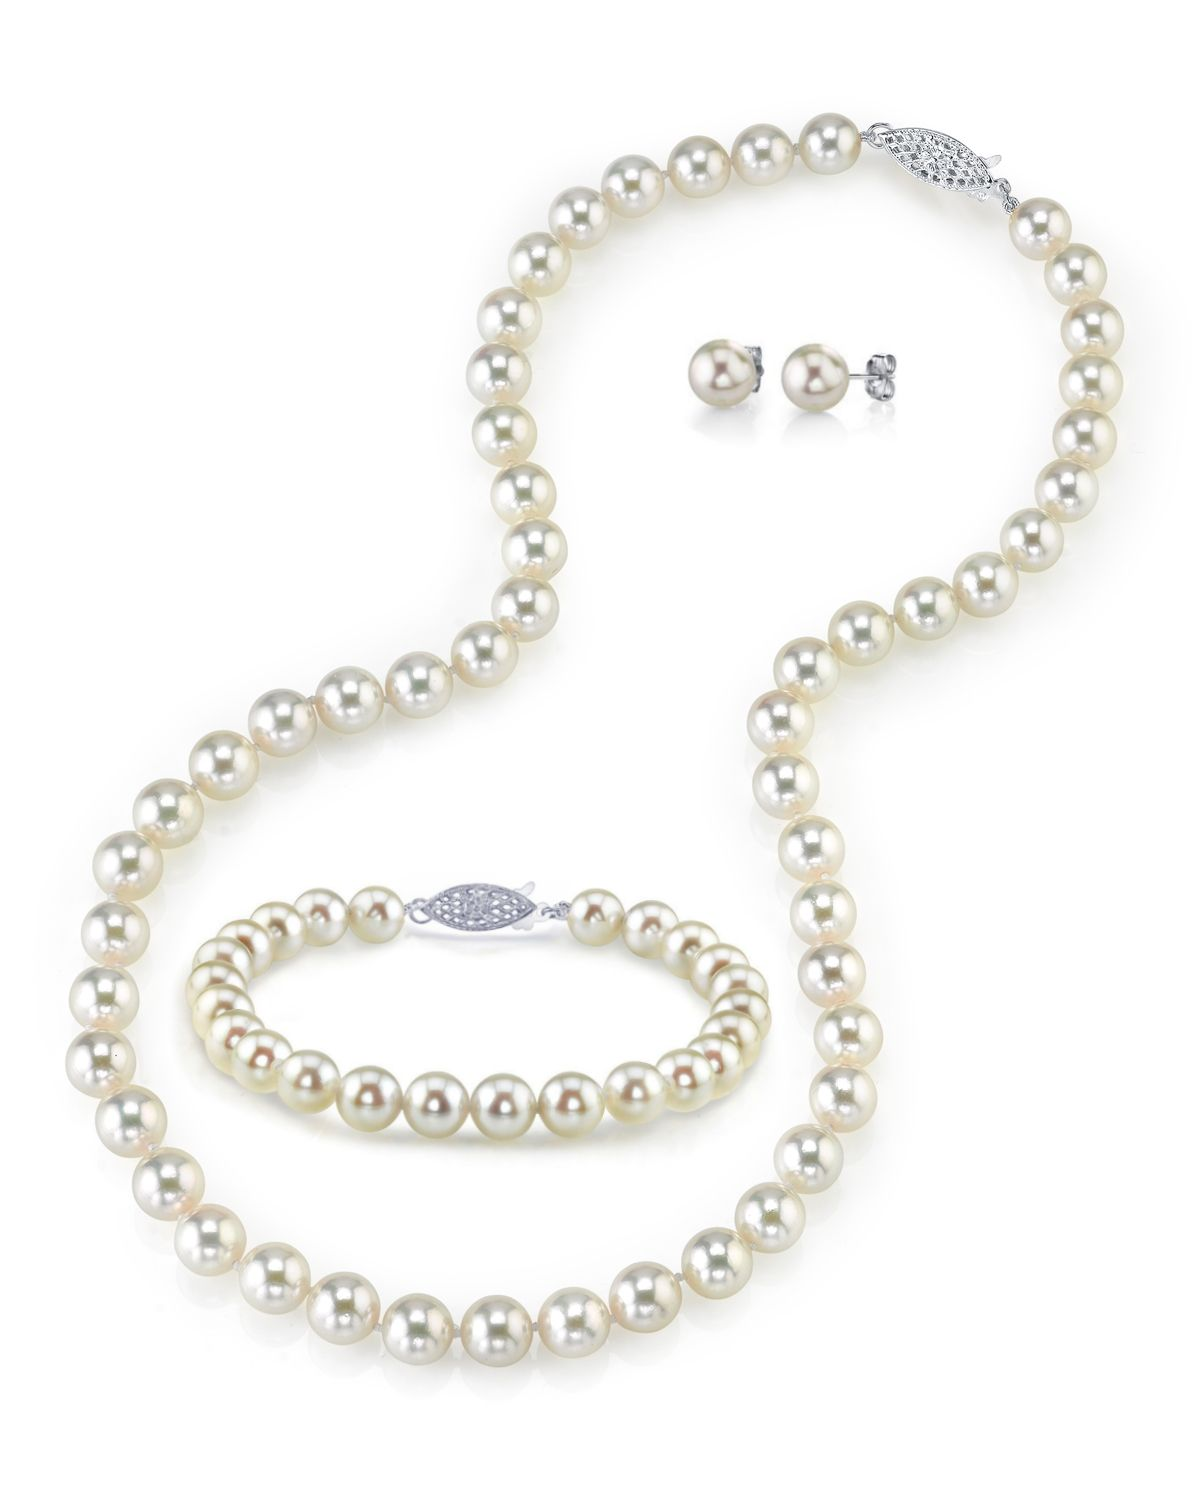 5.5-6.0mm Japanese Akoya White Pearl Set